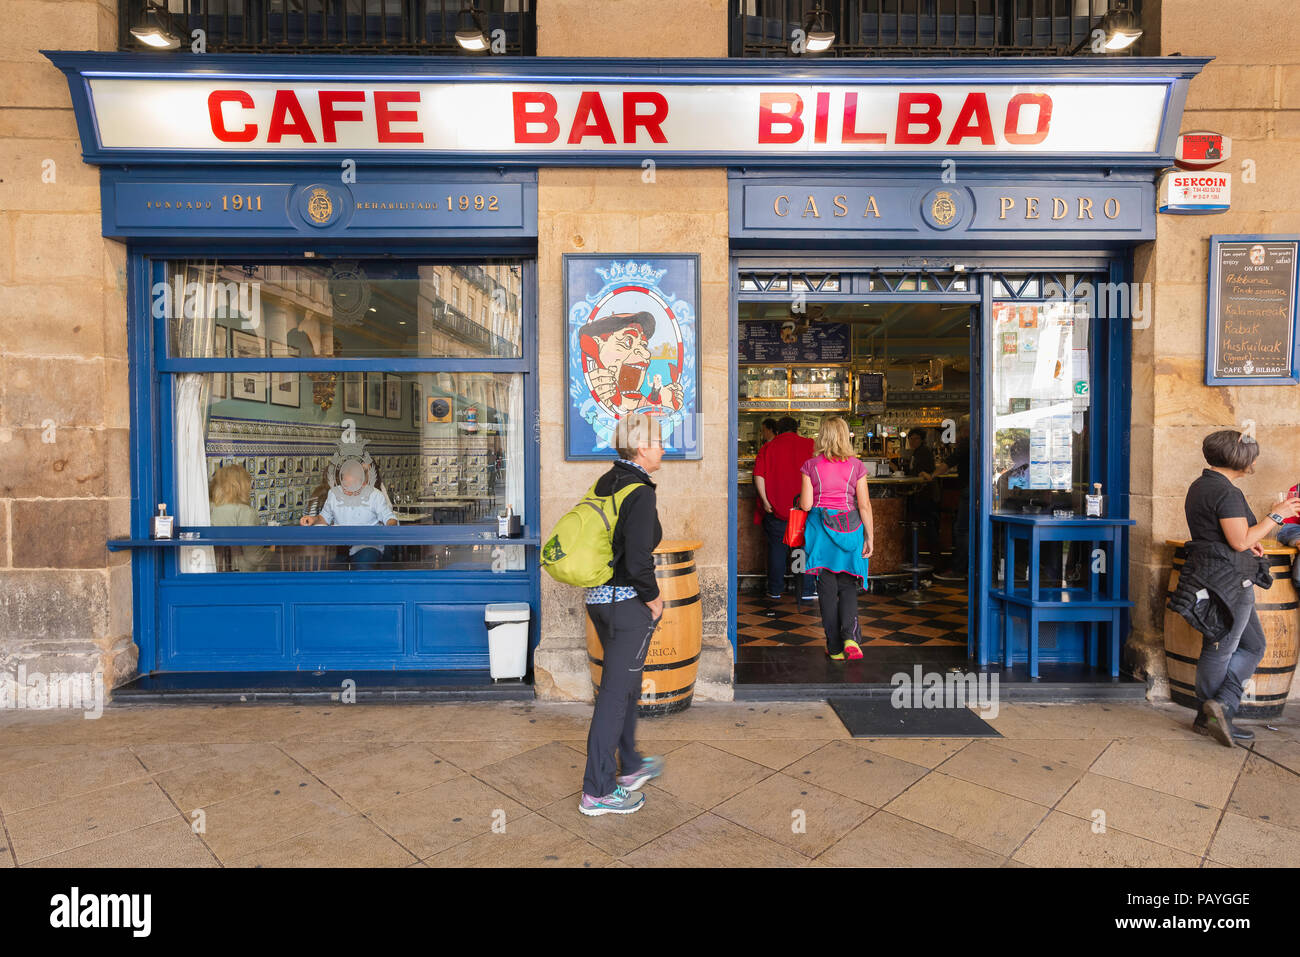 Bilbao cafe bar, view of the entrance to the popular Cafe Bar Bilbao in the Plaza Nueva in the Old Town (Casco Vieja) area of Bilbao, Northern Spain. - Stock Image